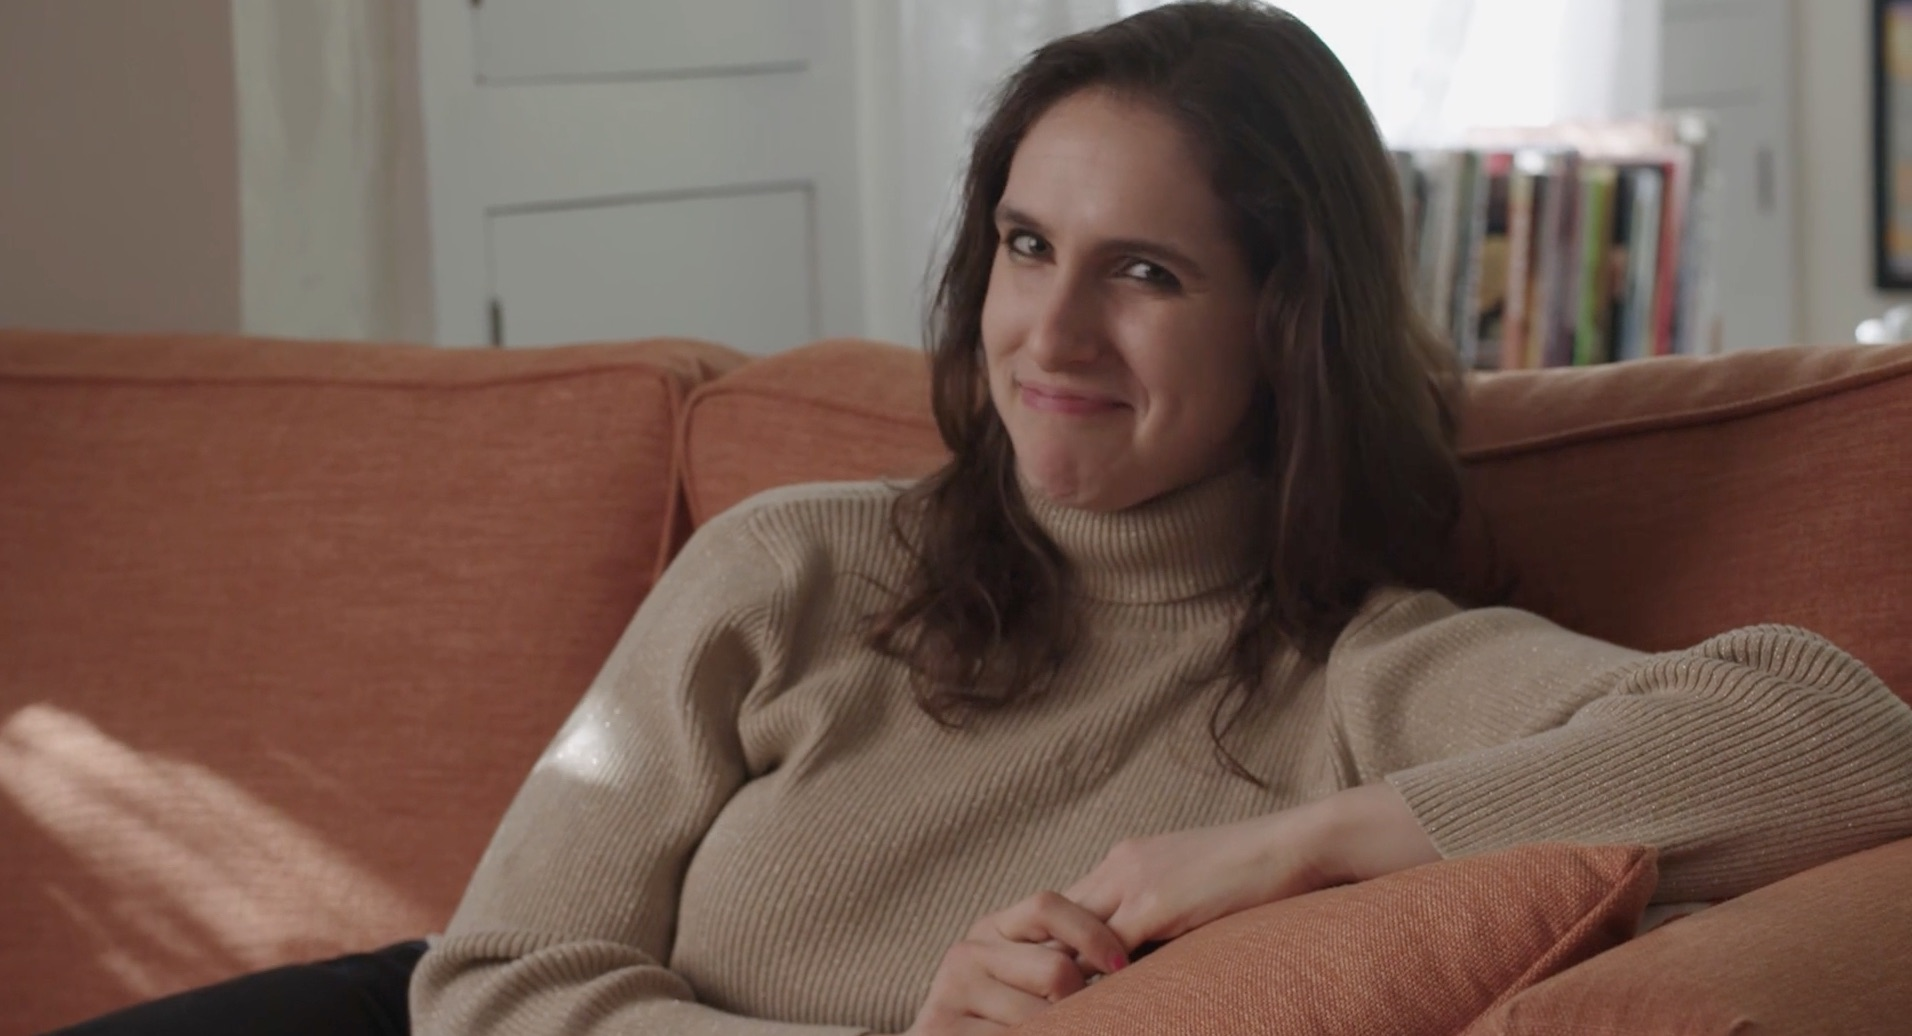 An Emmy For Megan - Smiling Megan Amram